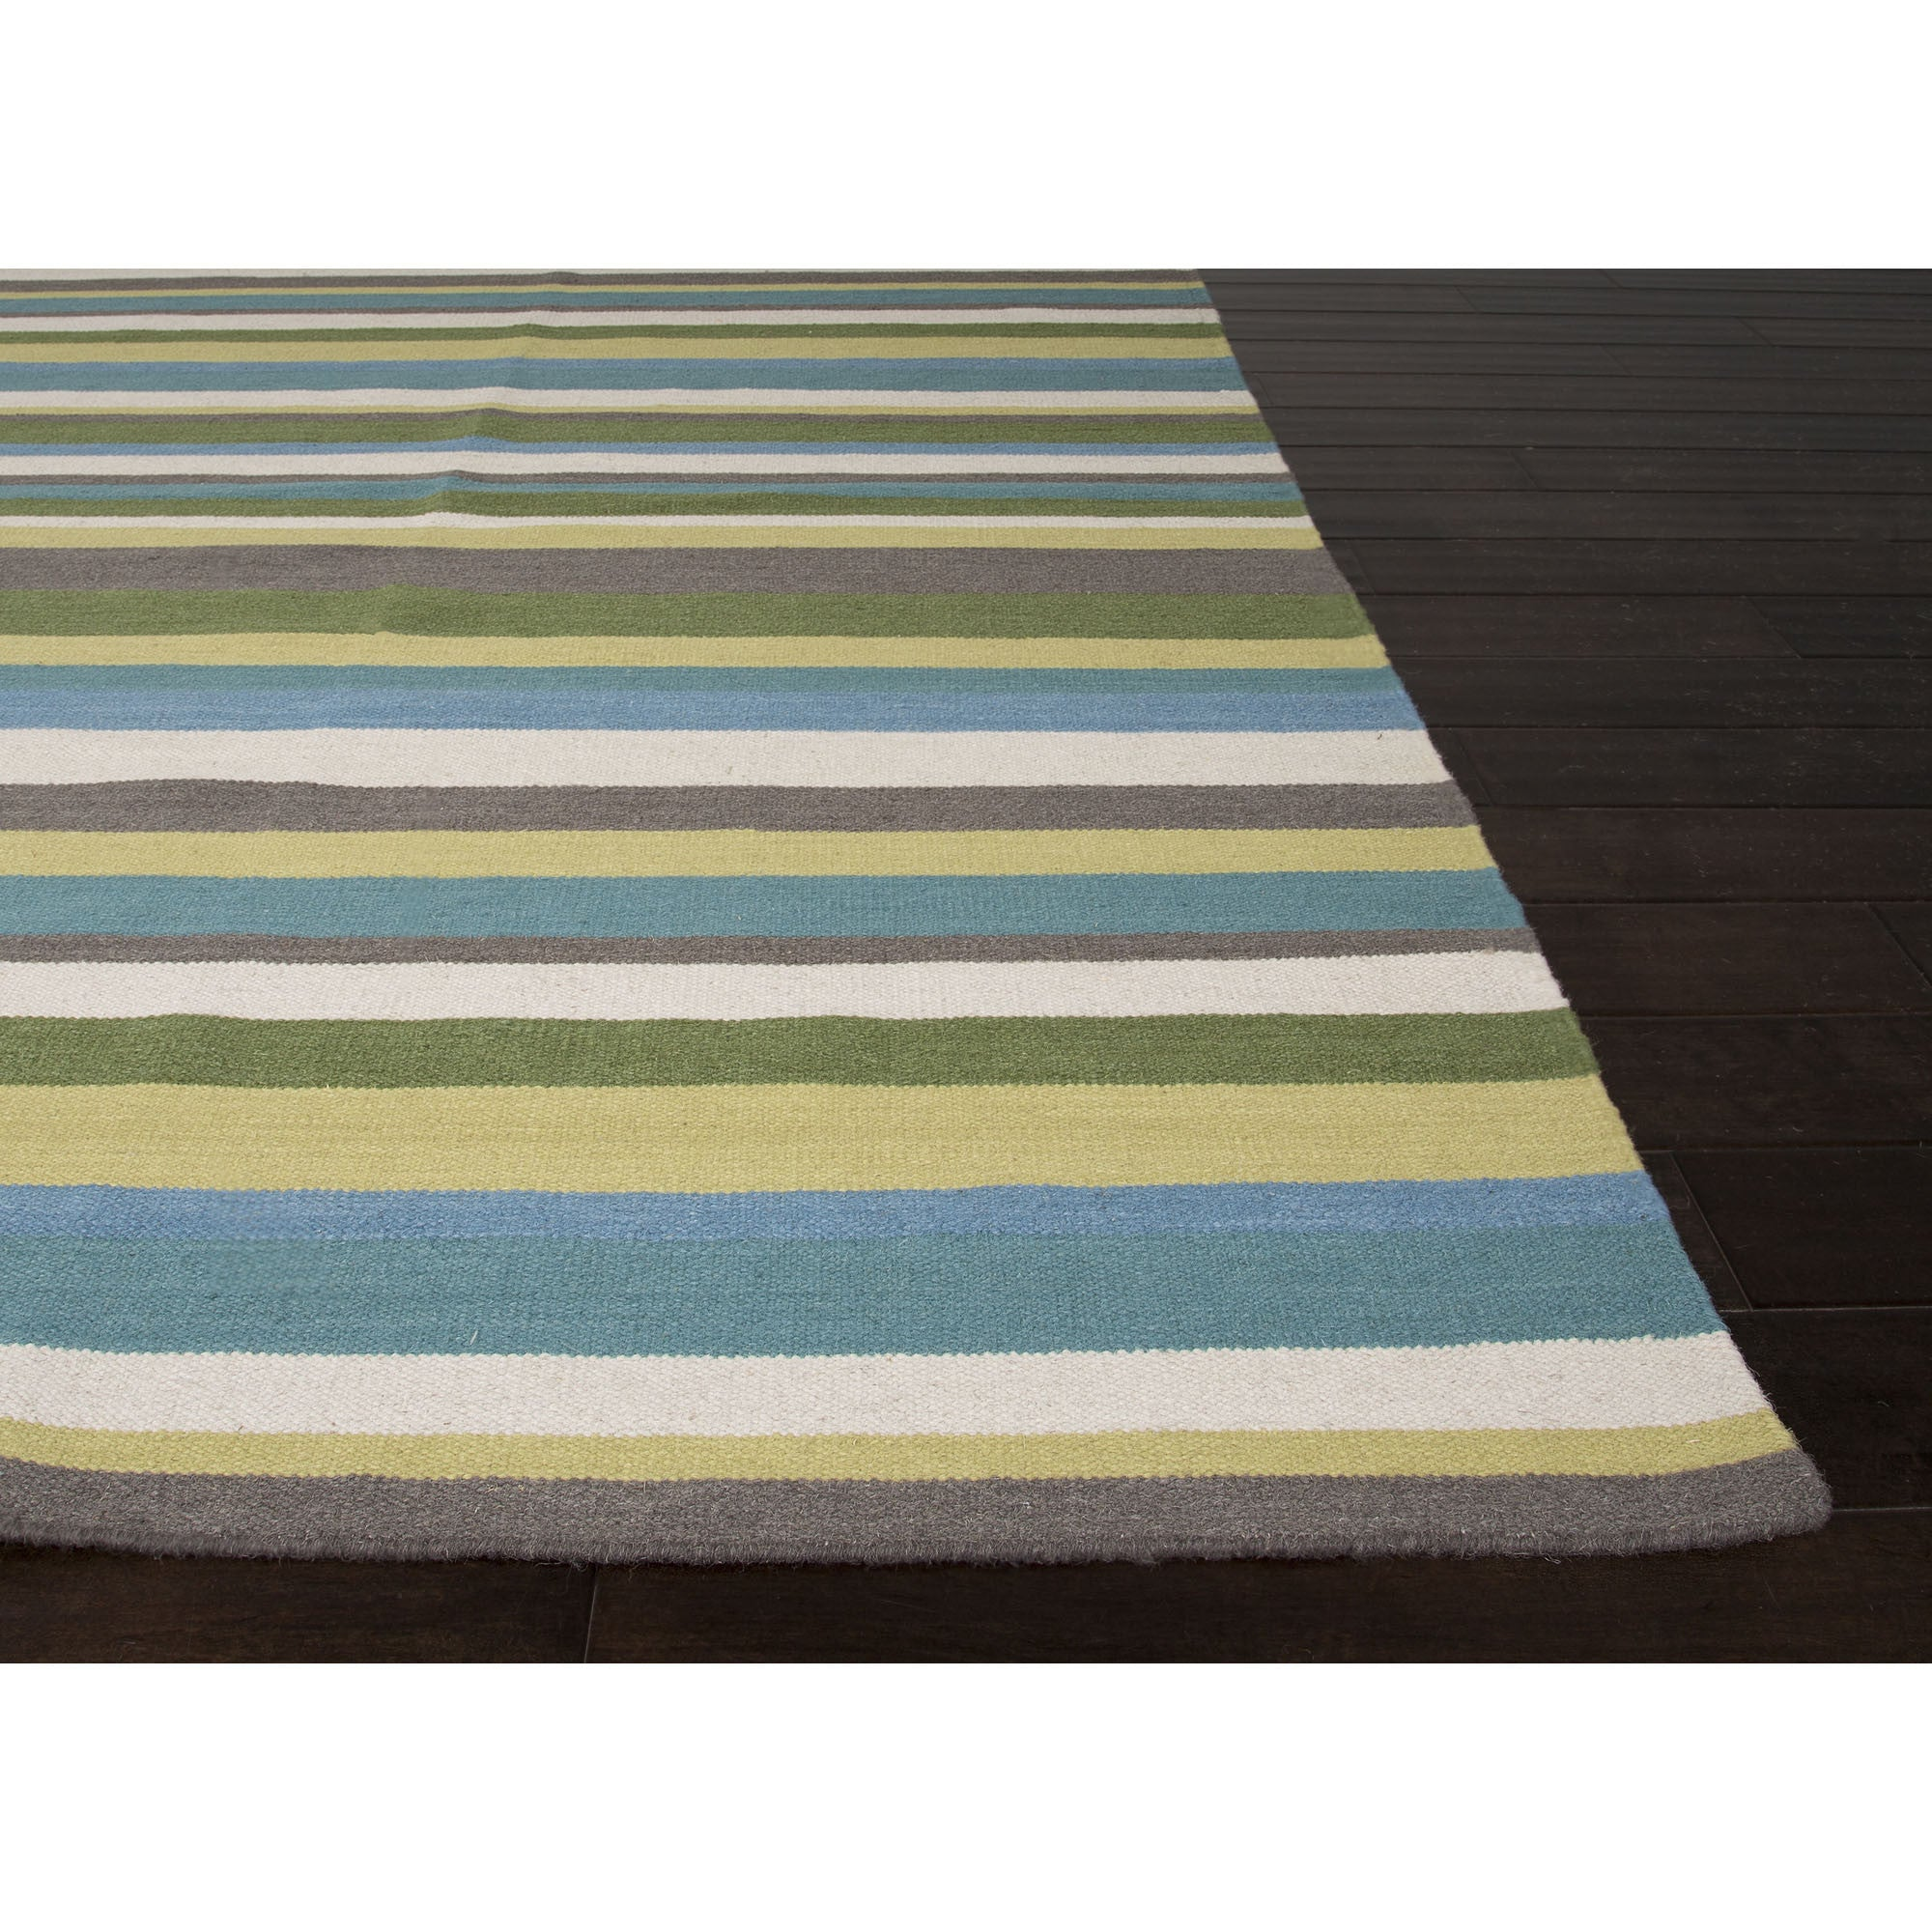 Jaipur Rugs Flatweave Stripe Pattern Greenblue Wool Area. Table Tops. Kurlancheek Furniture. Kitchen Counter Height. Oversized Lounge Chair. Glass Coffee Table. Fidelity Roofing. Wood Look Wallpaper. Lavender Bedroom